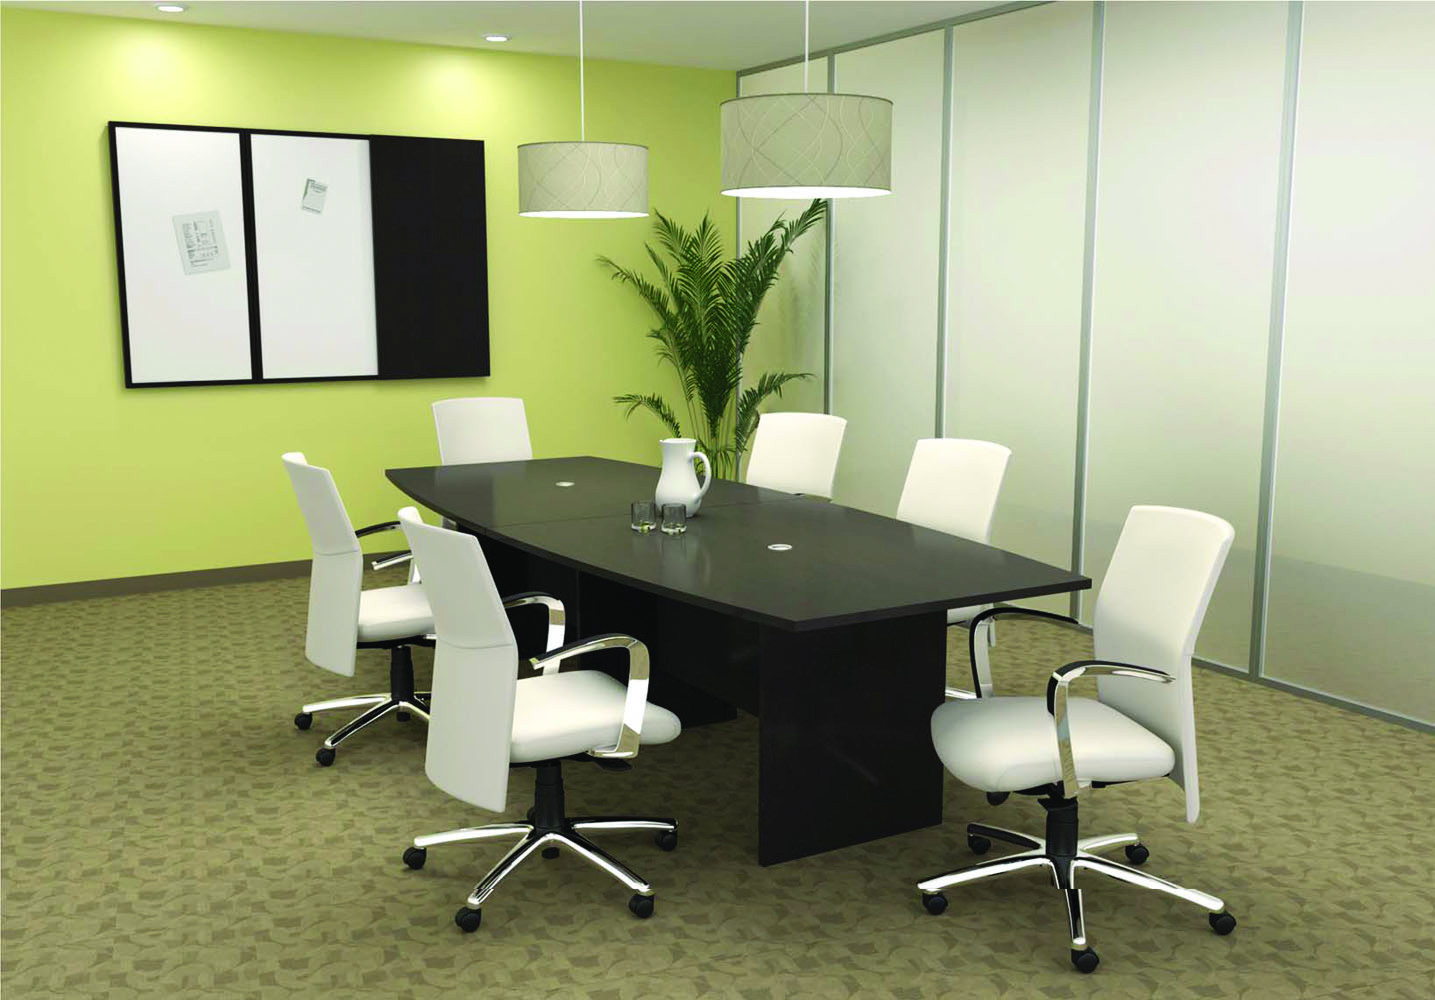 Boardroom table and chairs collaboration spaces office furniture sets